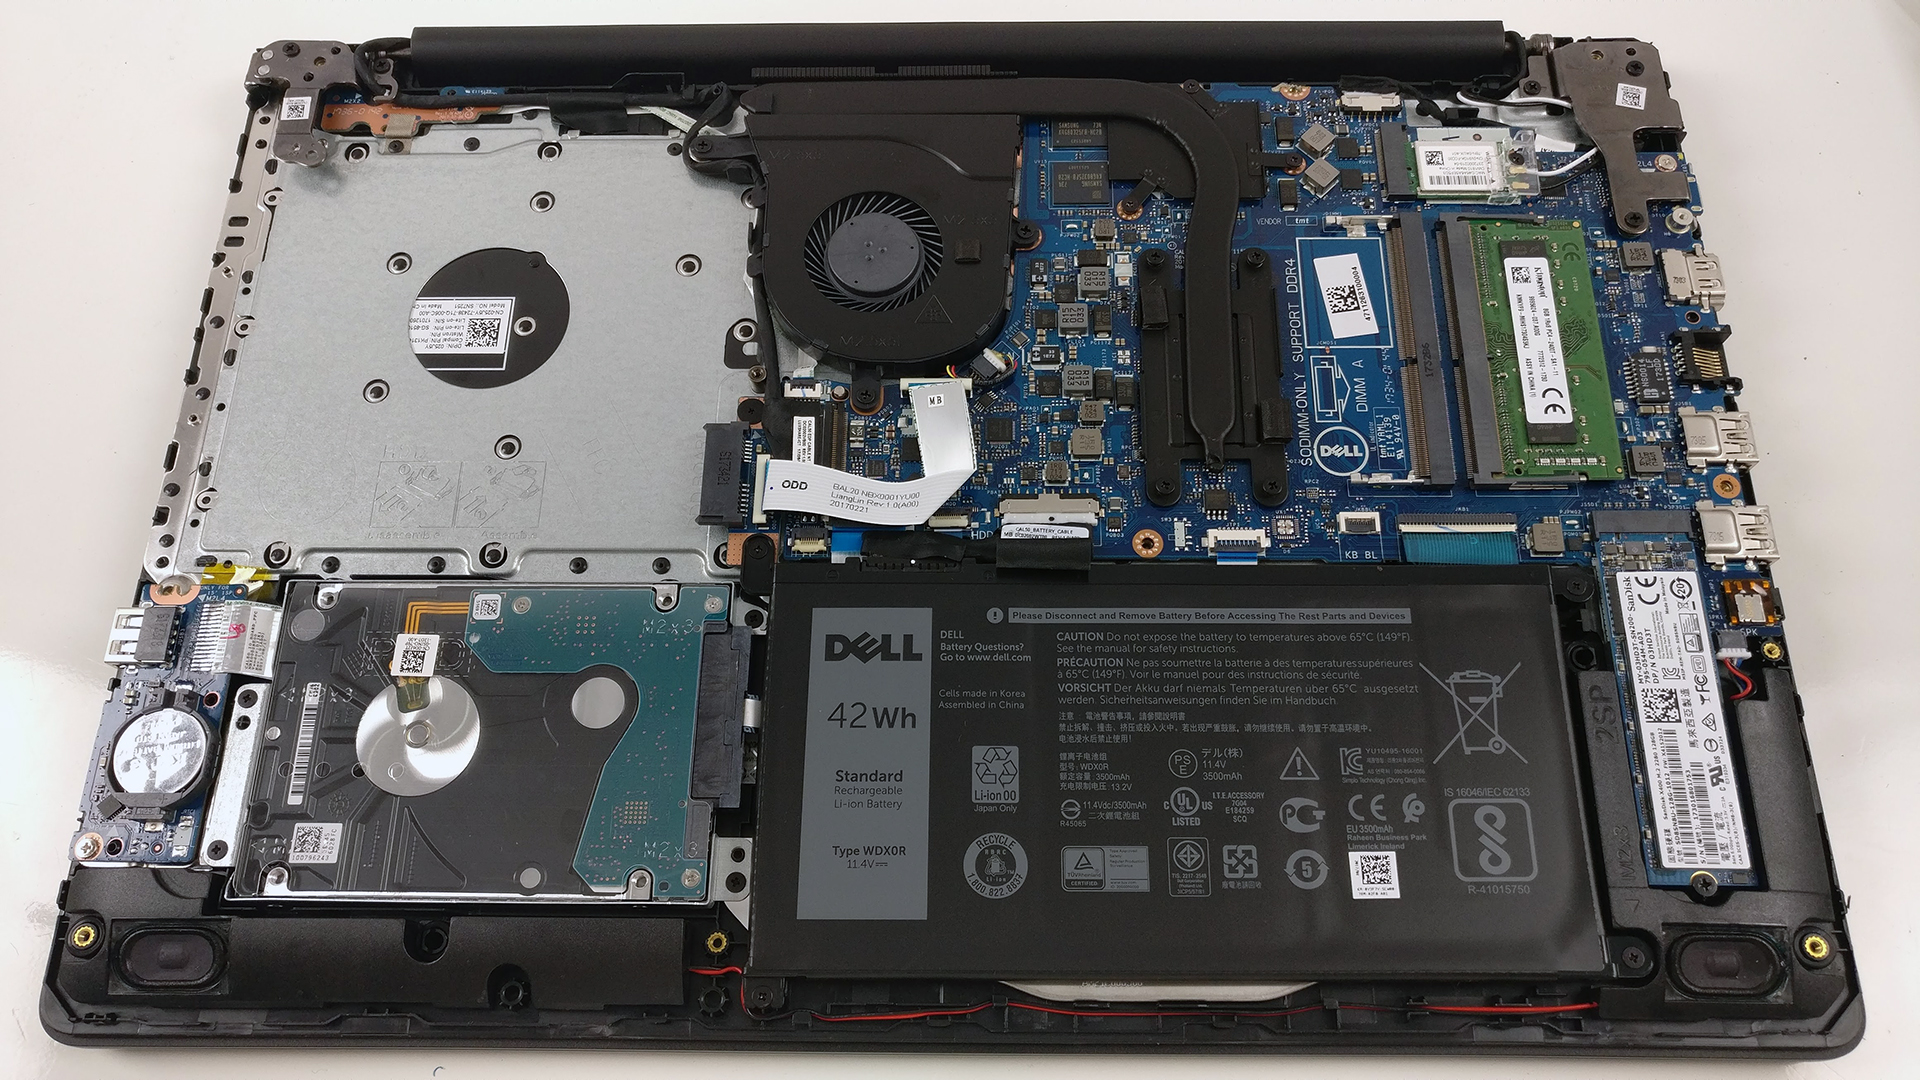 Dell Inspiron 15 5570 (Core i7-8550U, AMD Radeon 530) review